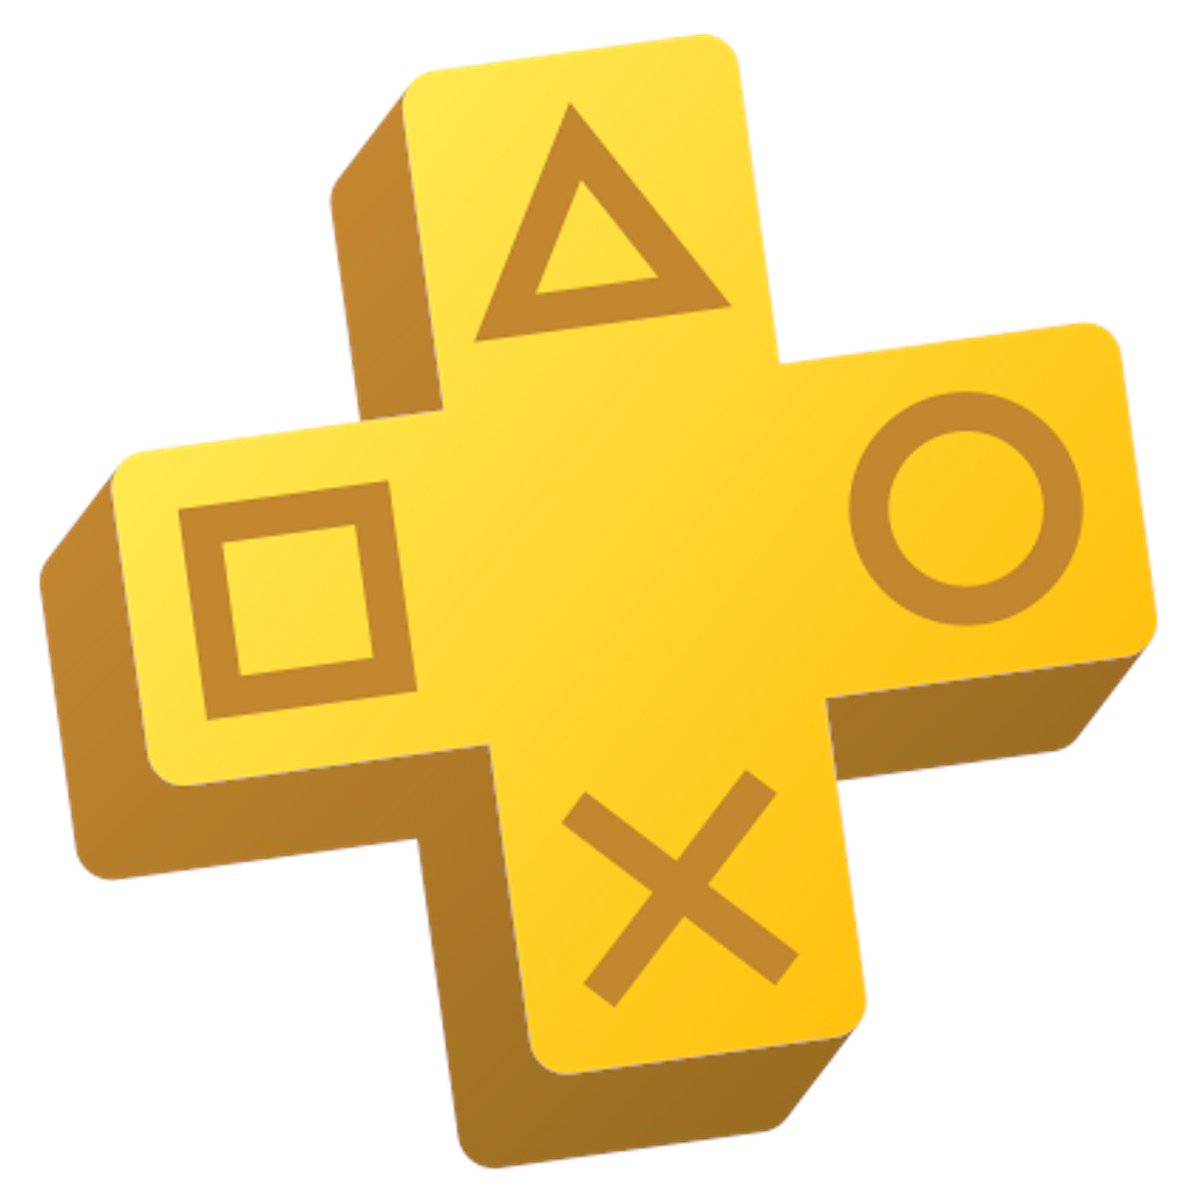 Signing up for PS Plus? Find out more here about what benefits come with a membership:  http://bit.ly/2MBupEg